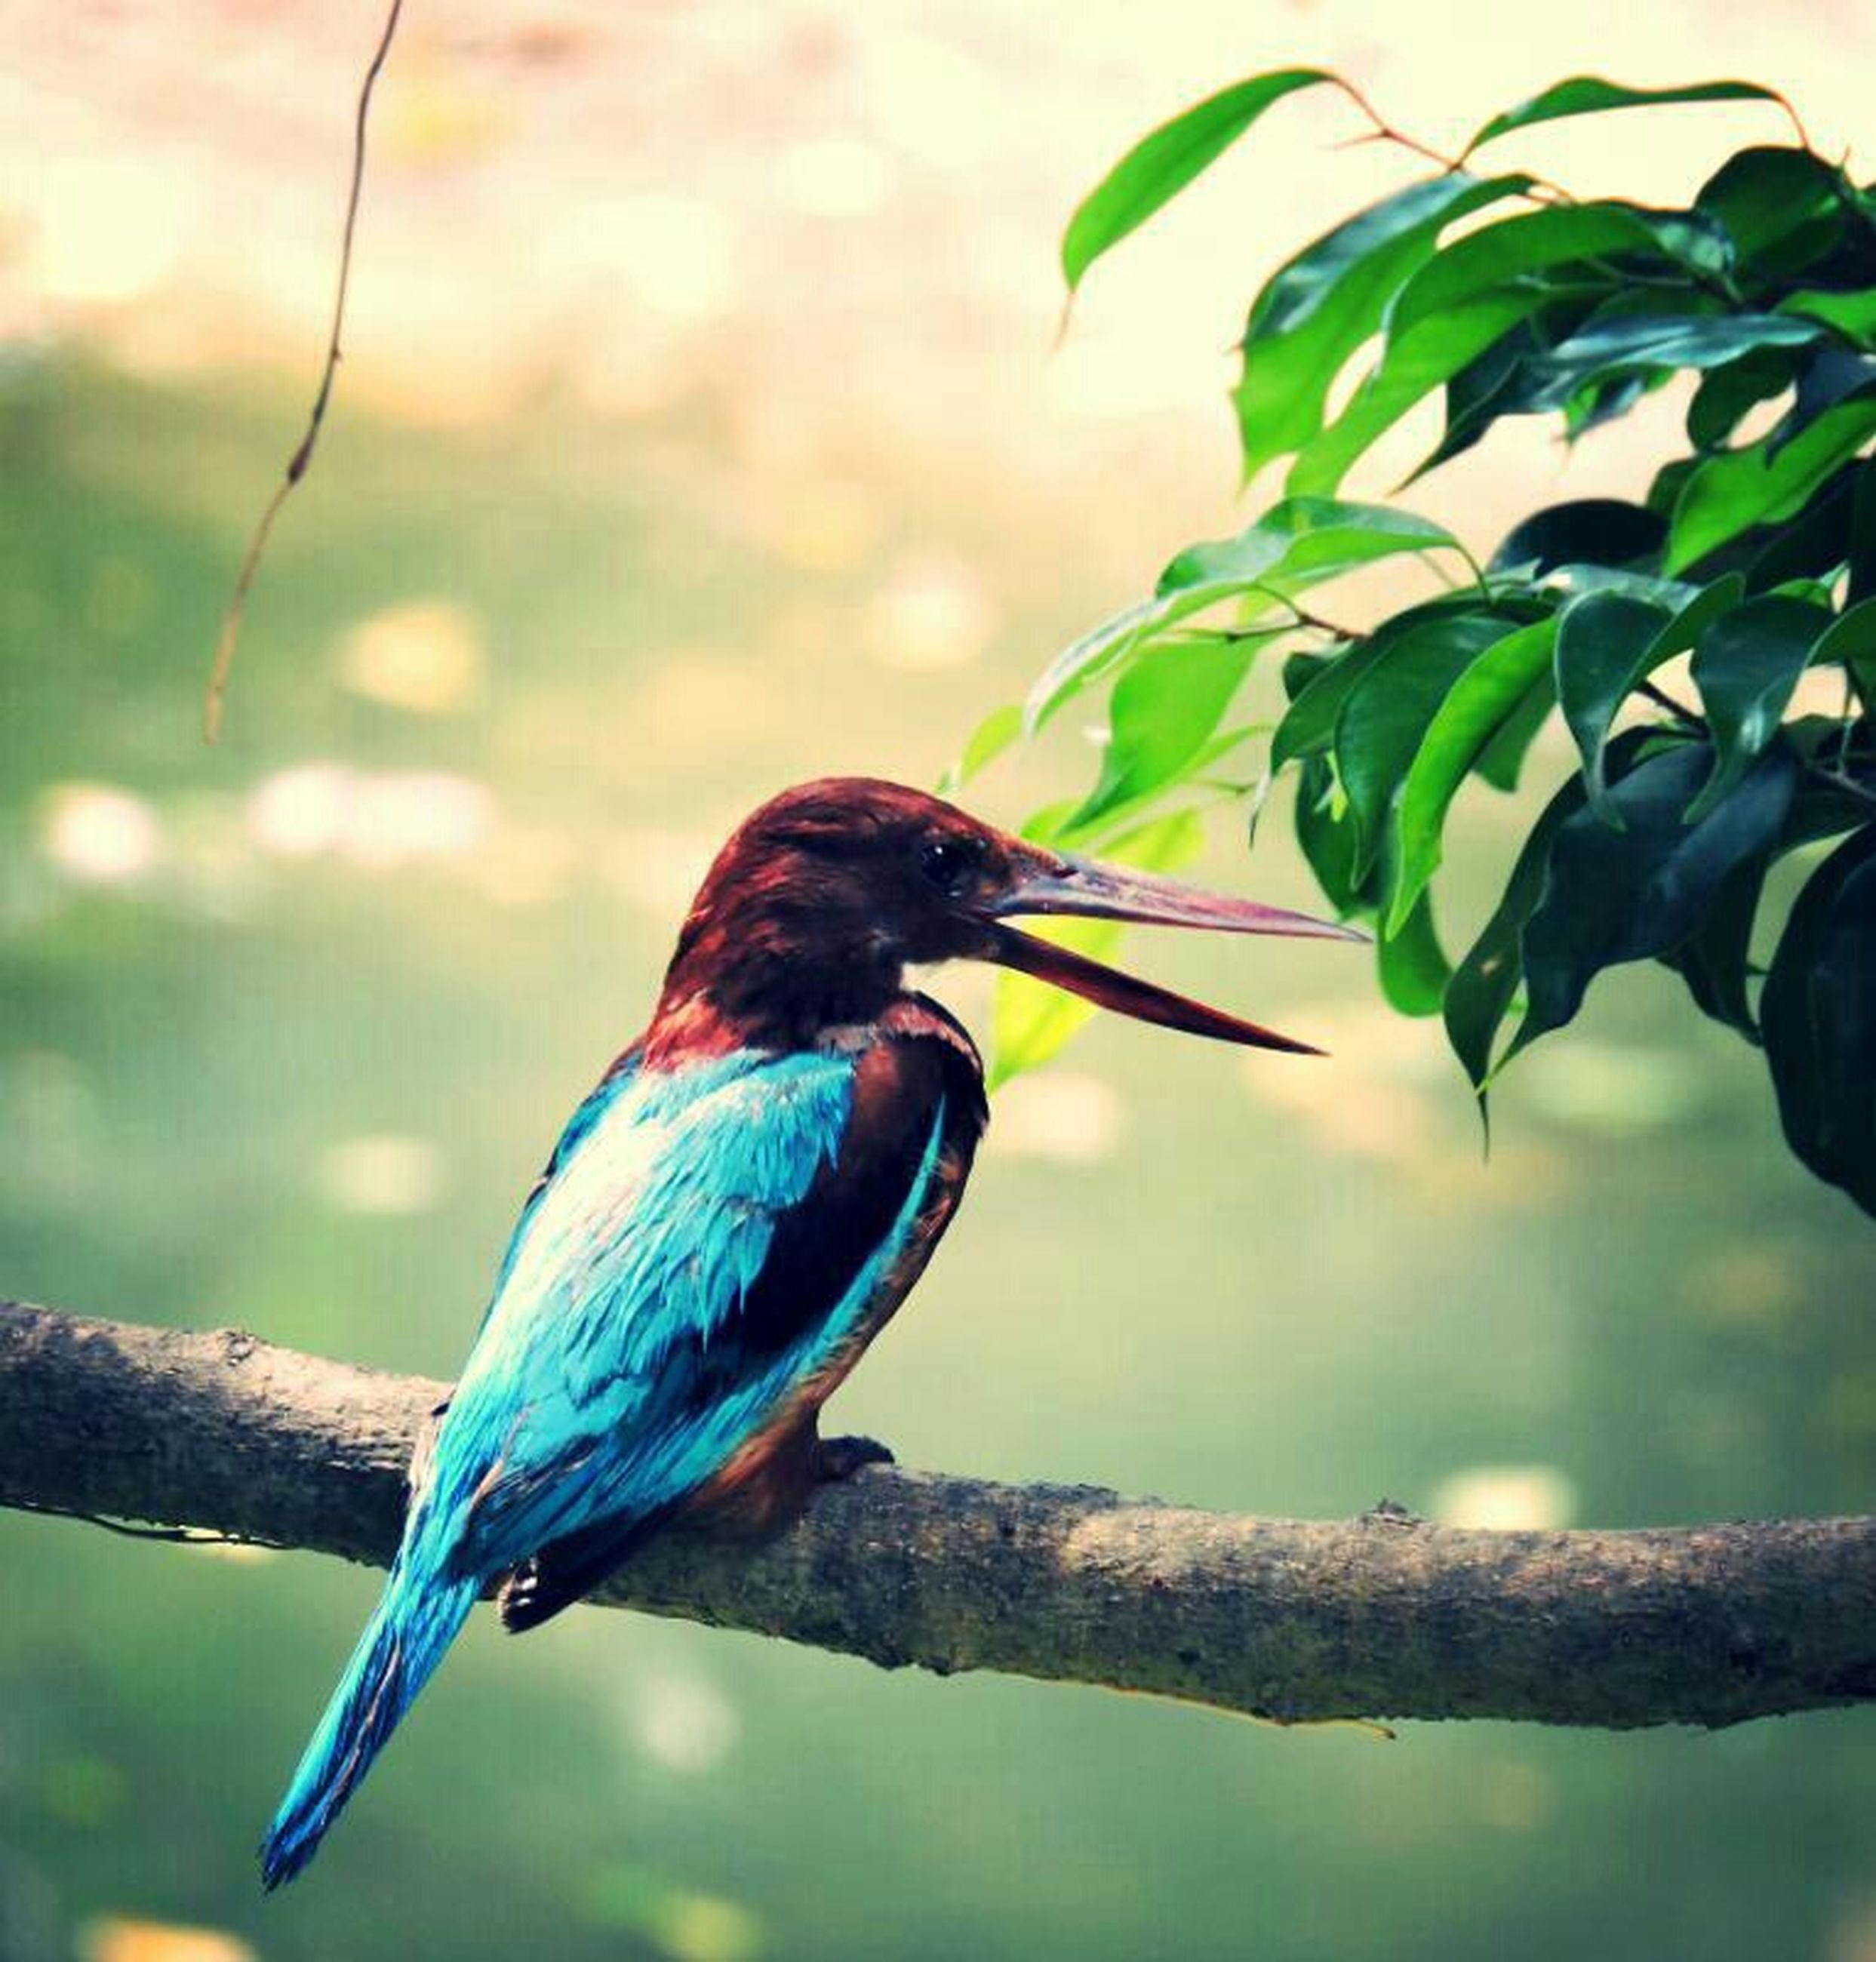 bird, one animal, animal themes, animals in the wild, wildlife, focus on foreground, perching, blue, branch, nature, close-up, beauty in nature, tree, outdoors, day, full length, beak, selective focus, side view, no people